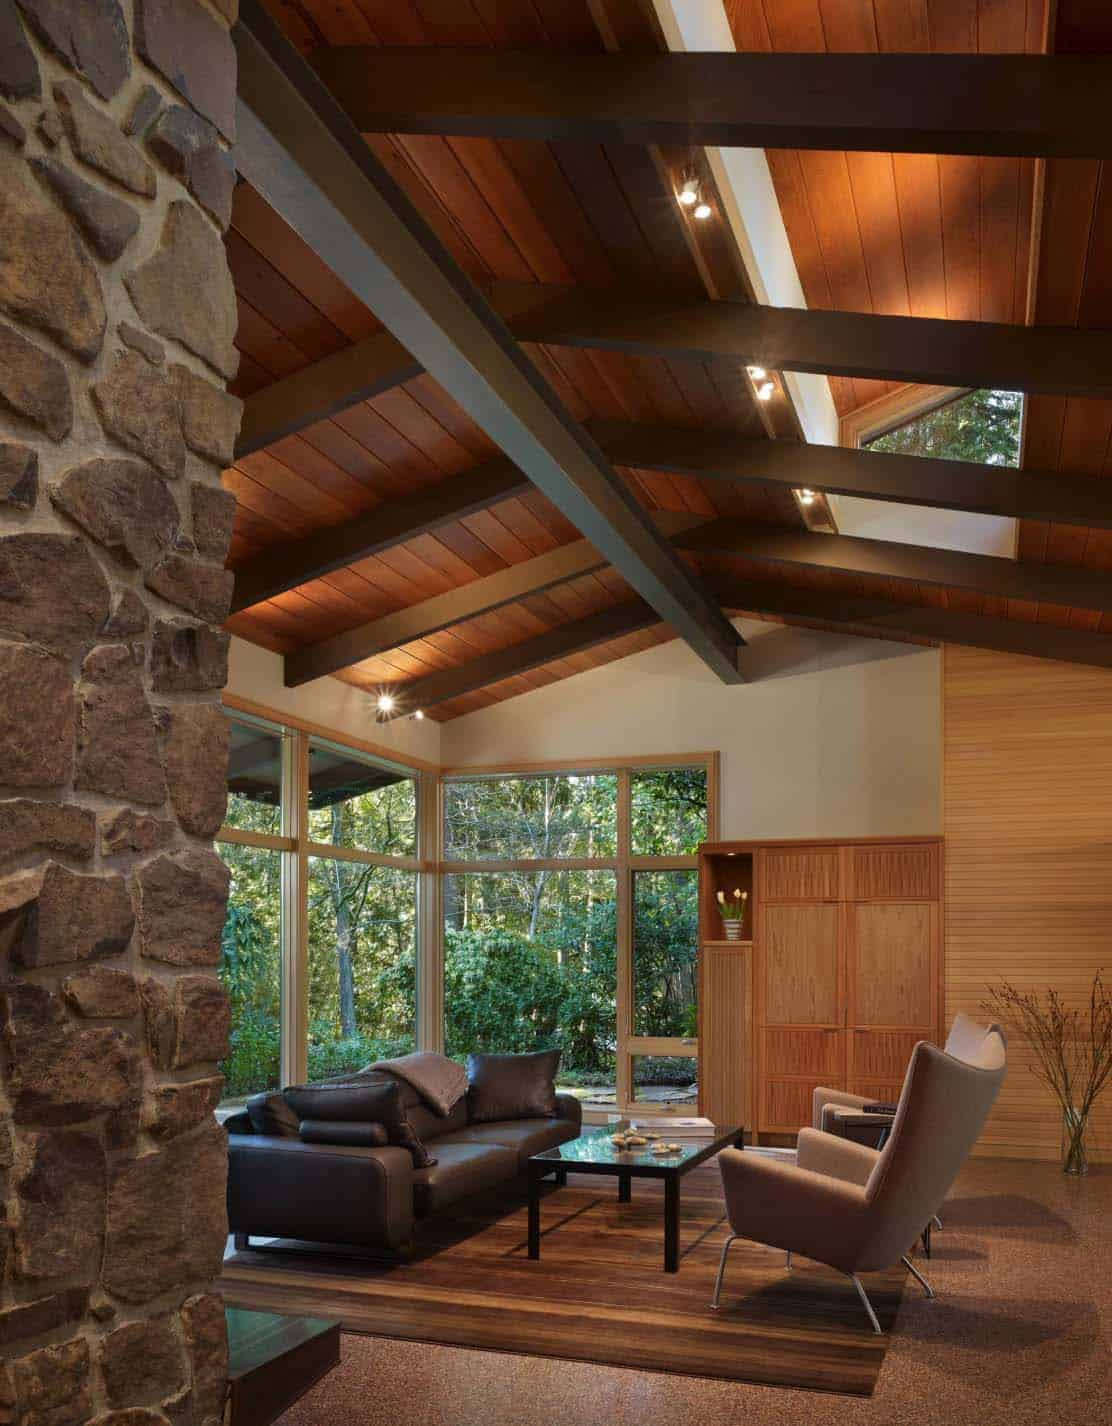 Home Interior Design with Wood